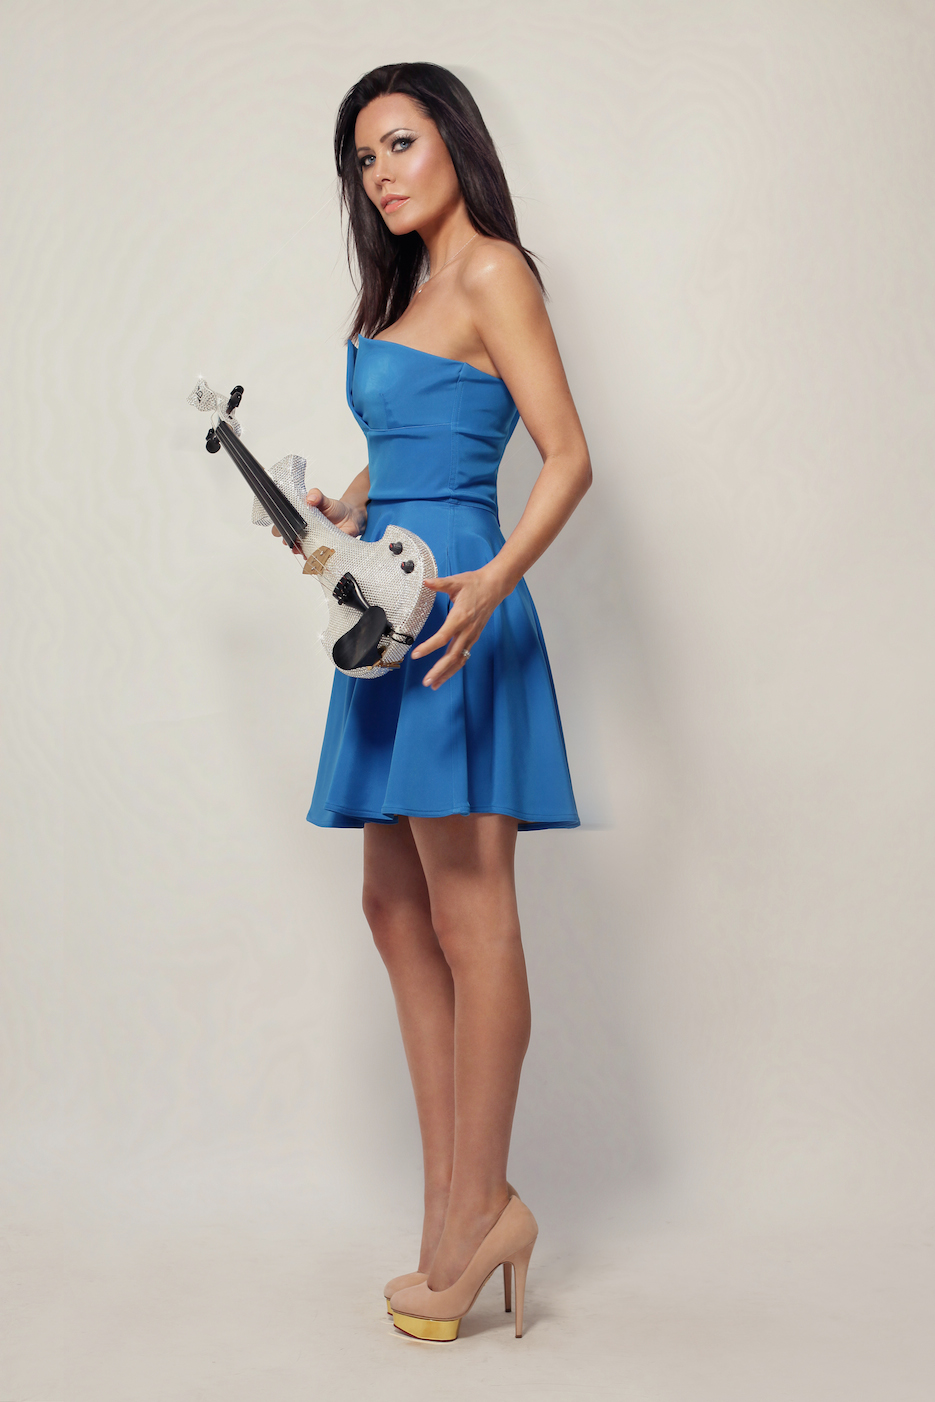 Electric violinist Linzi Stoppard wearing strapless blue dress